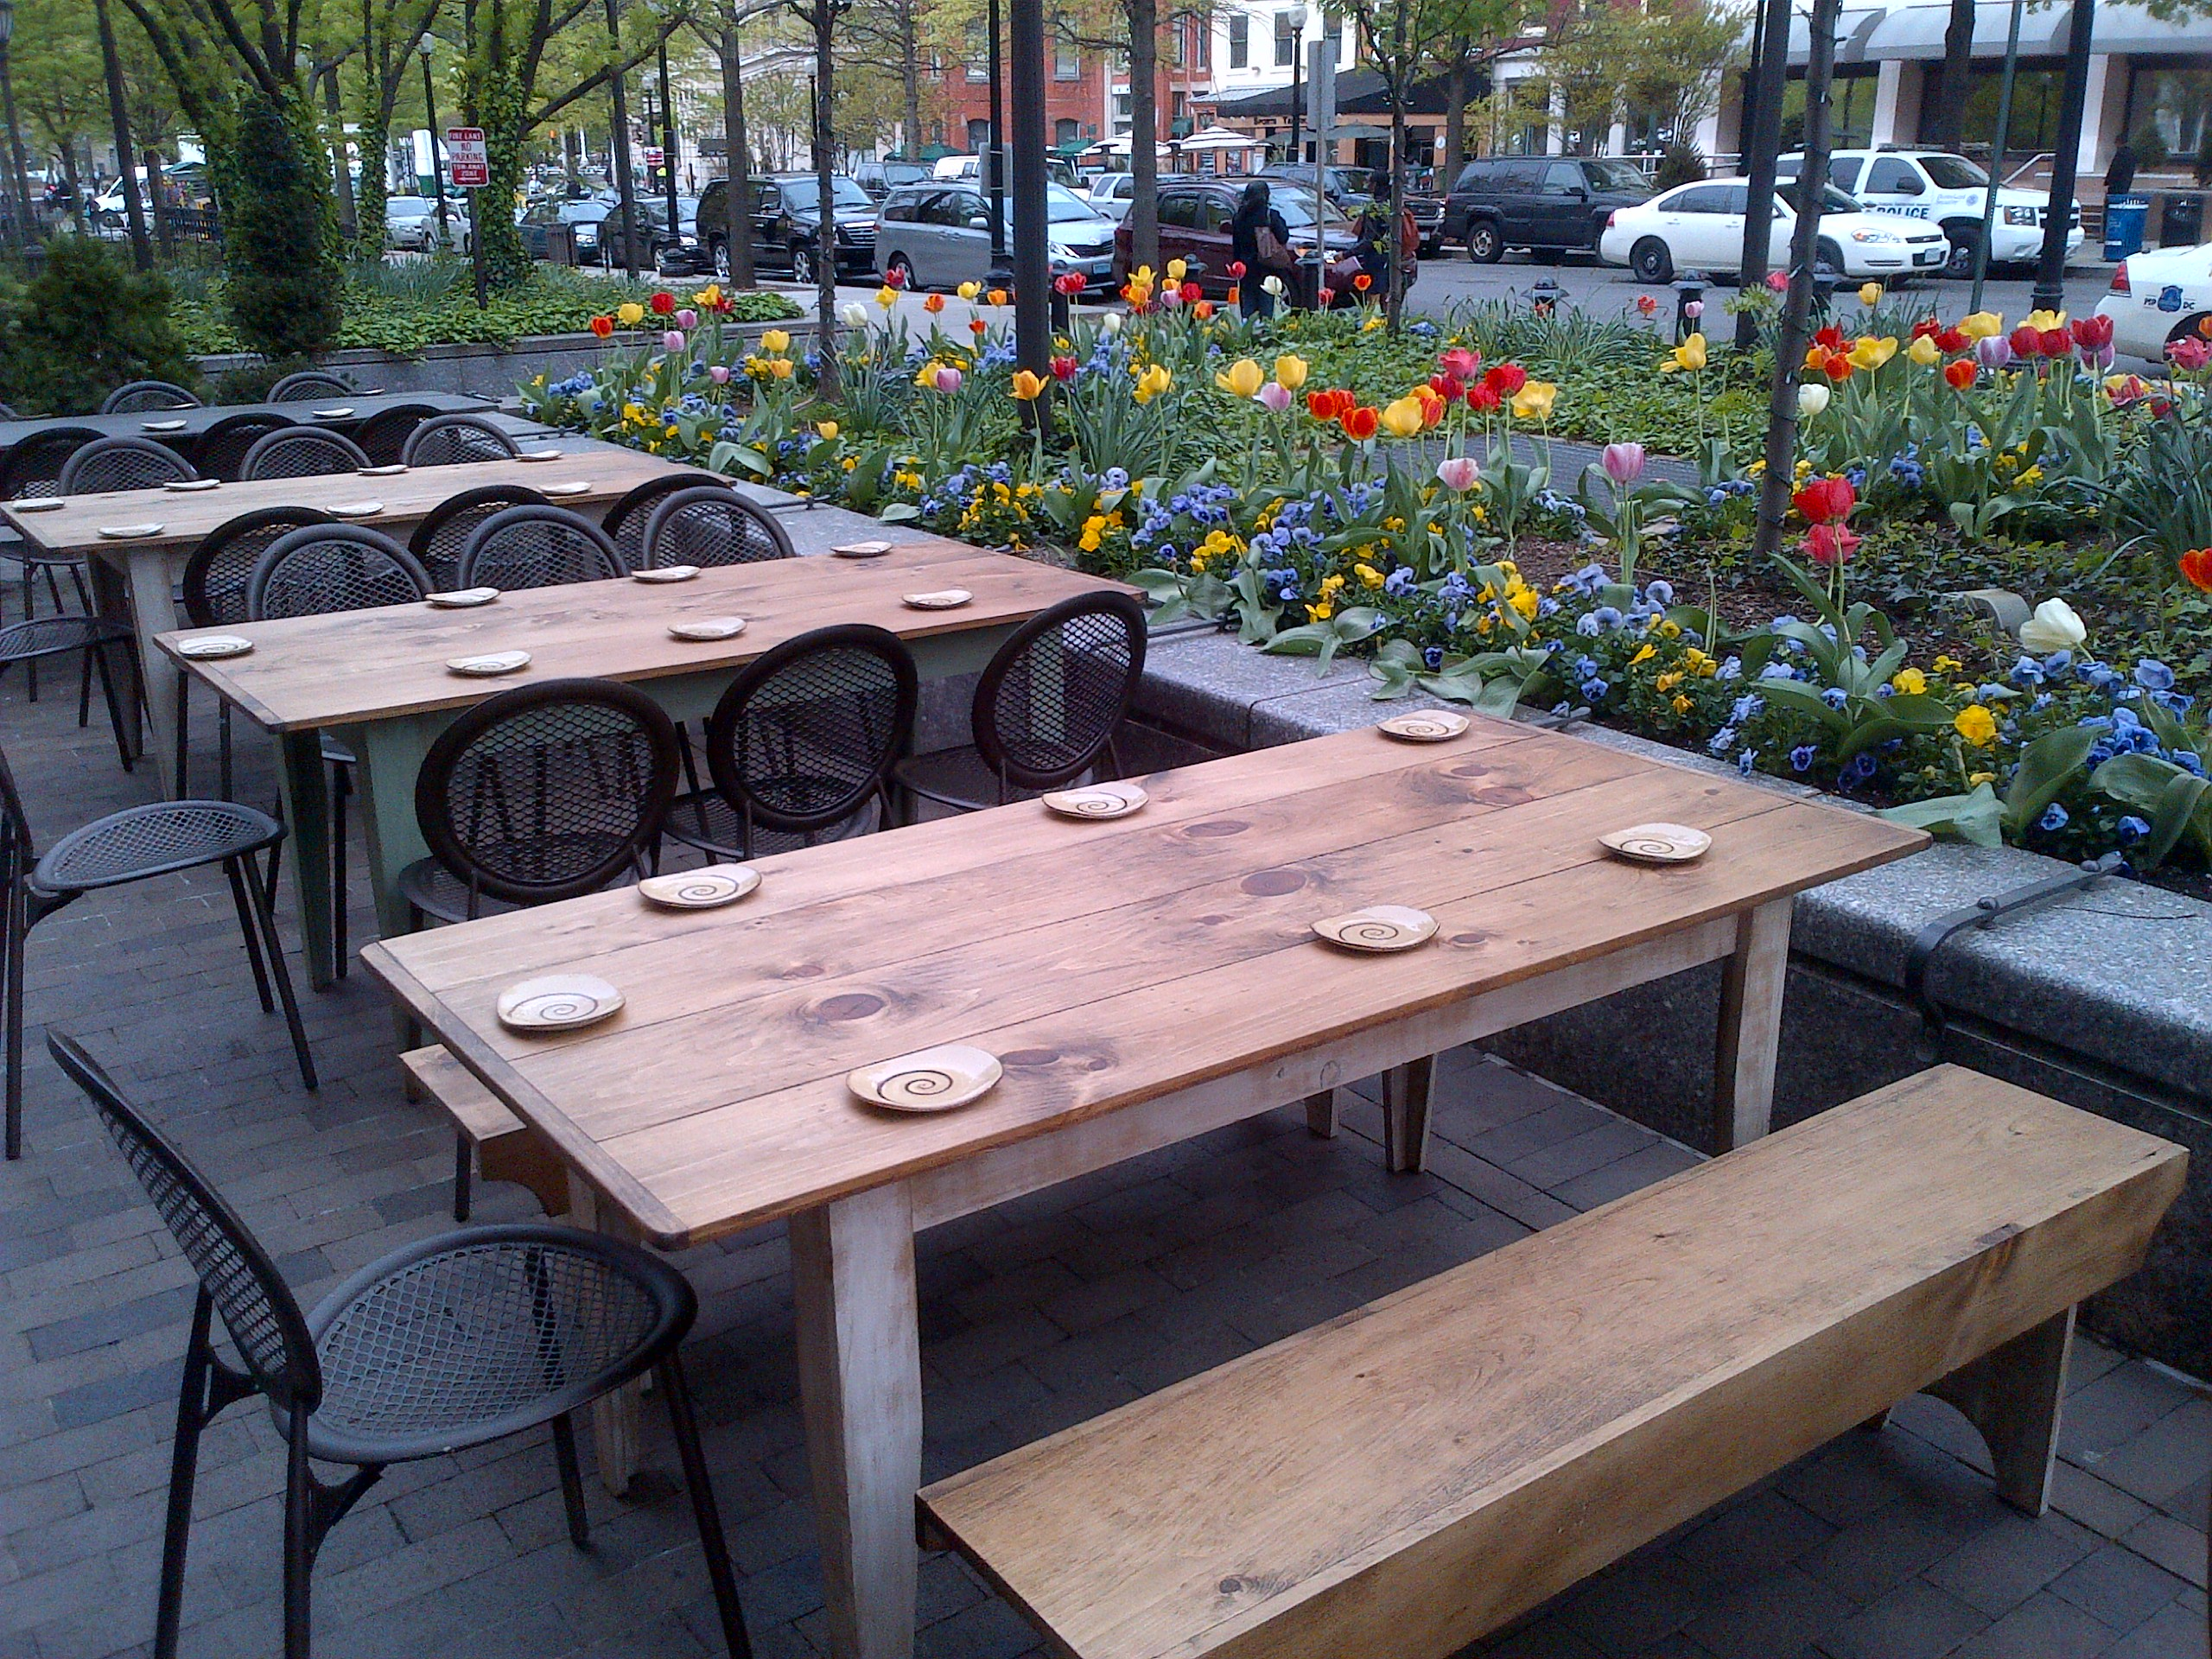 Luckily For Us, They Doubled Their Gorgeous Patiou0027s Seating Capacity (look  At Those Flowers!!), Making Room For 70 Prime Outdoor Wining And Dining  Spots.